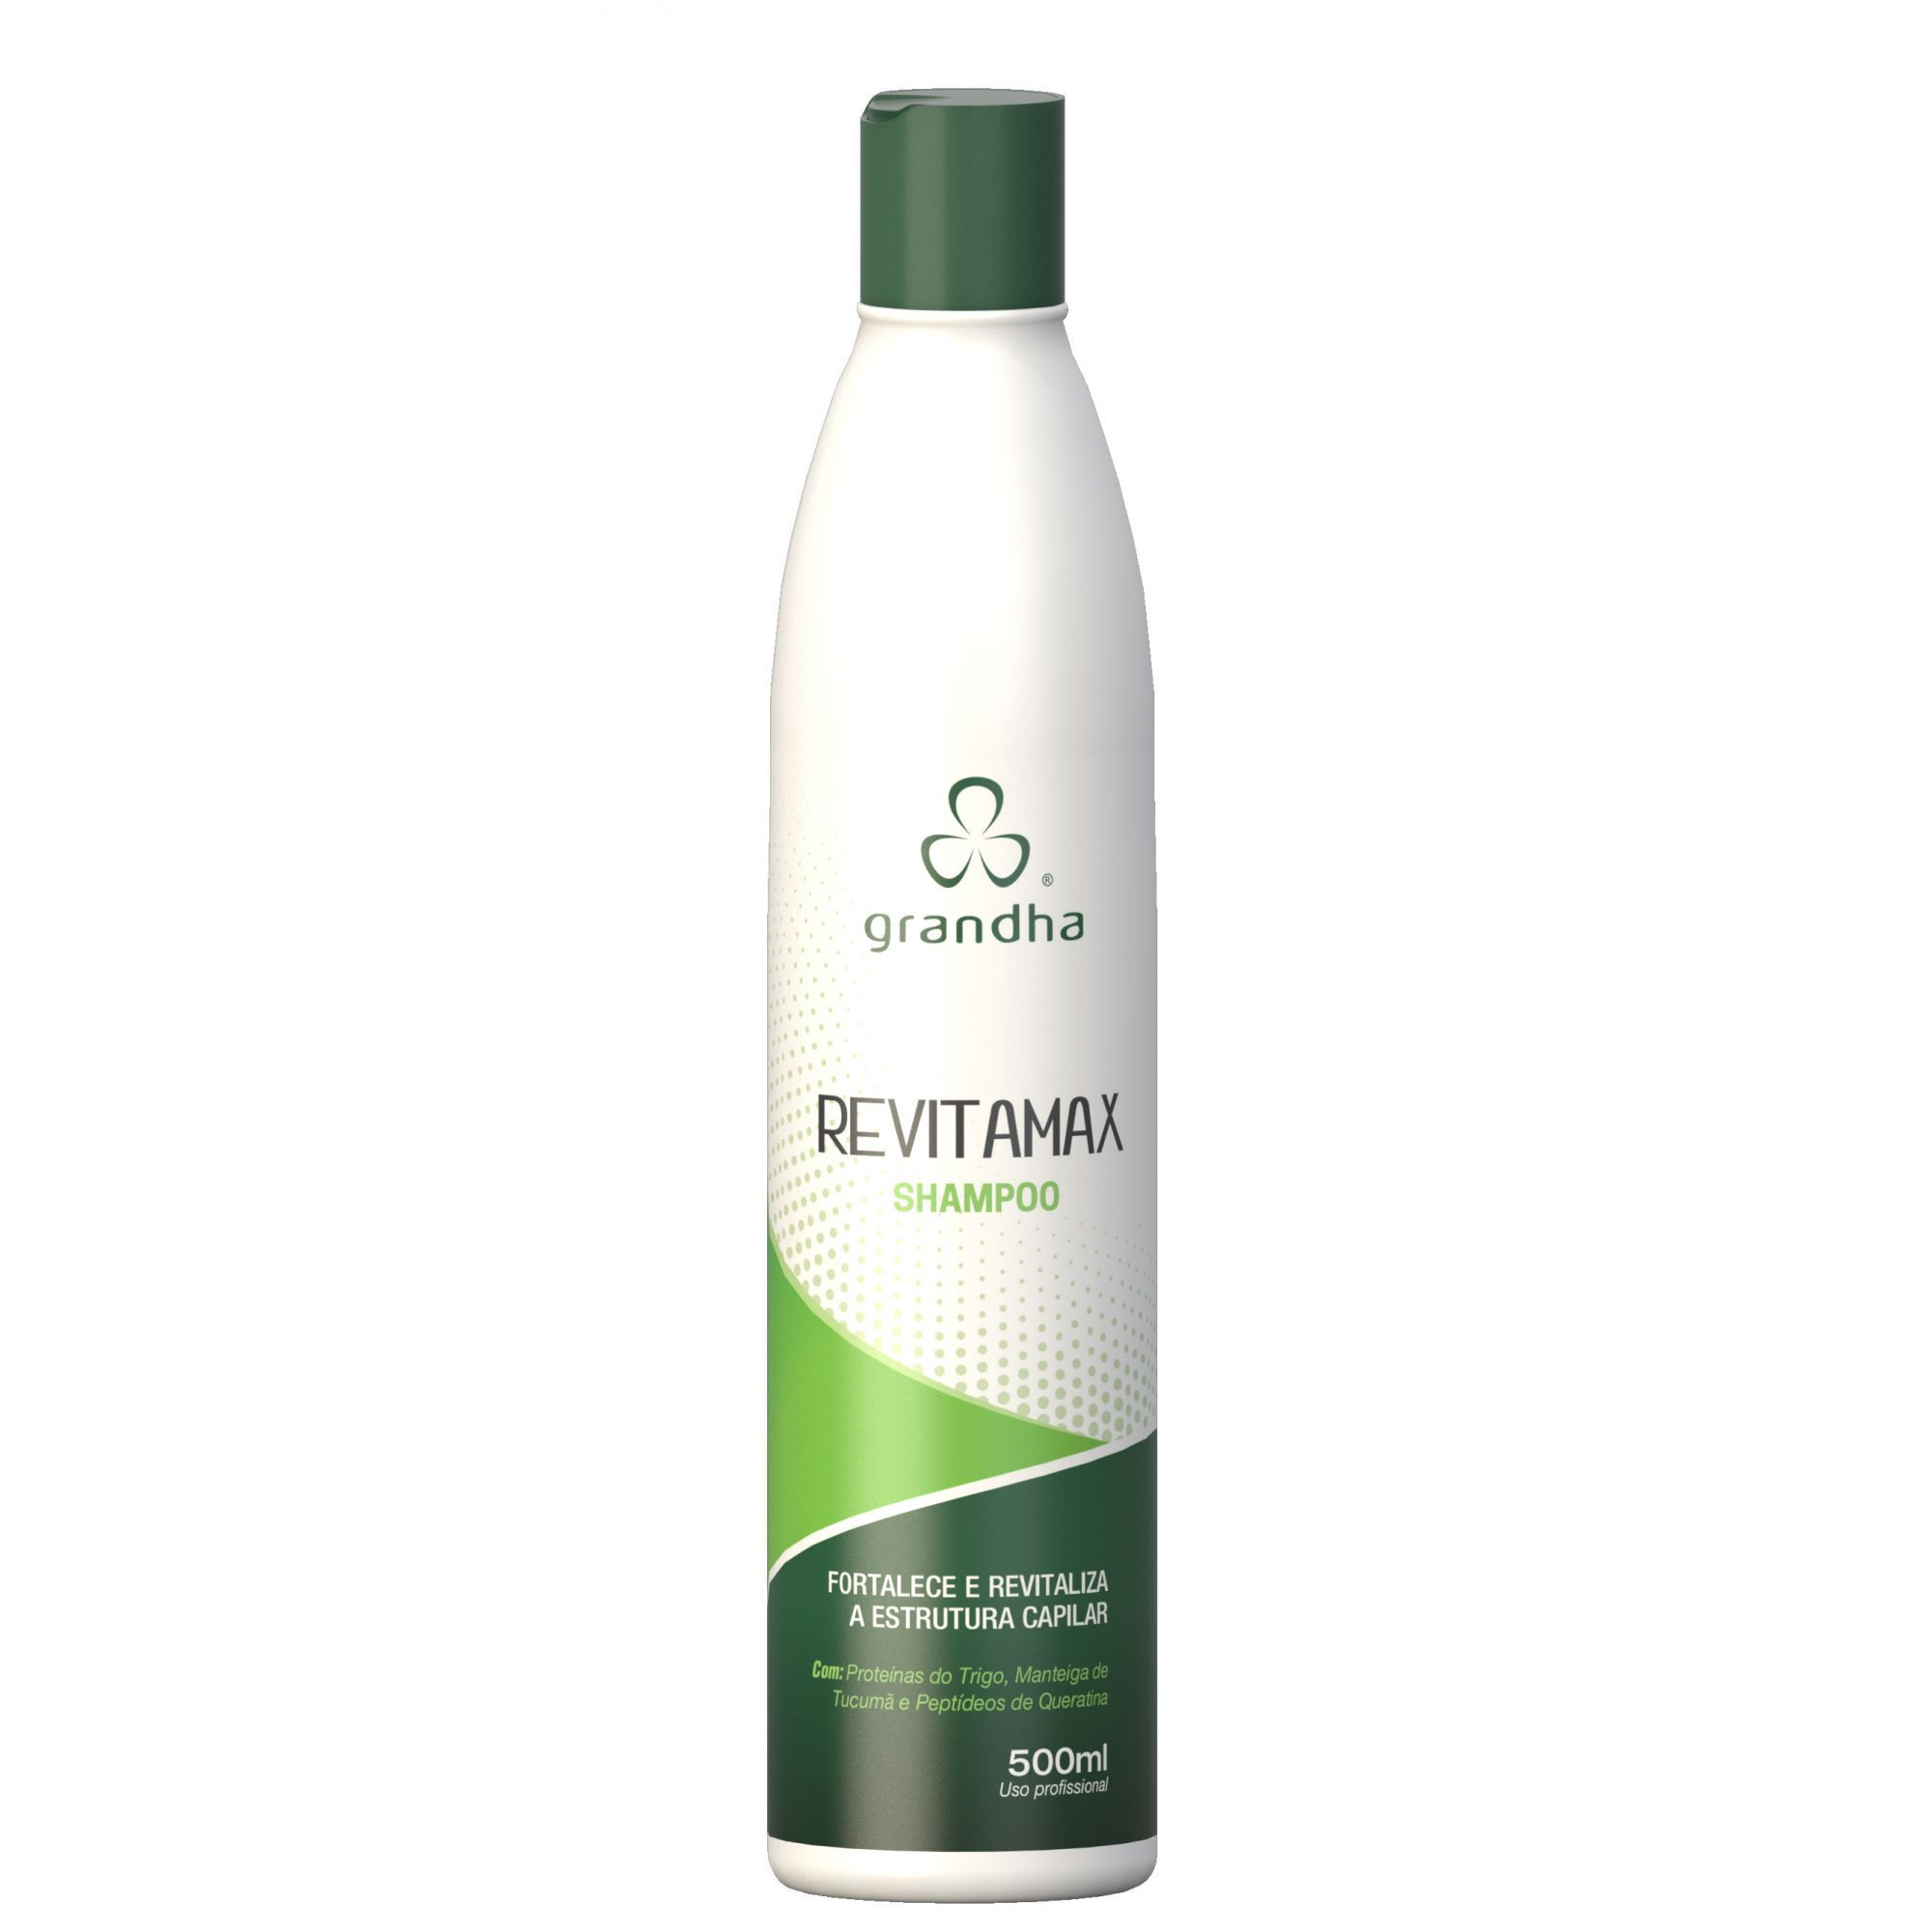 Shampoo Grandha Revitamax 300ml